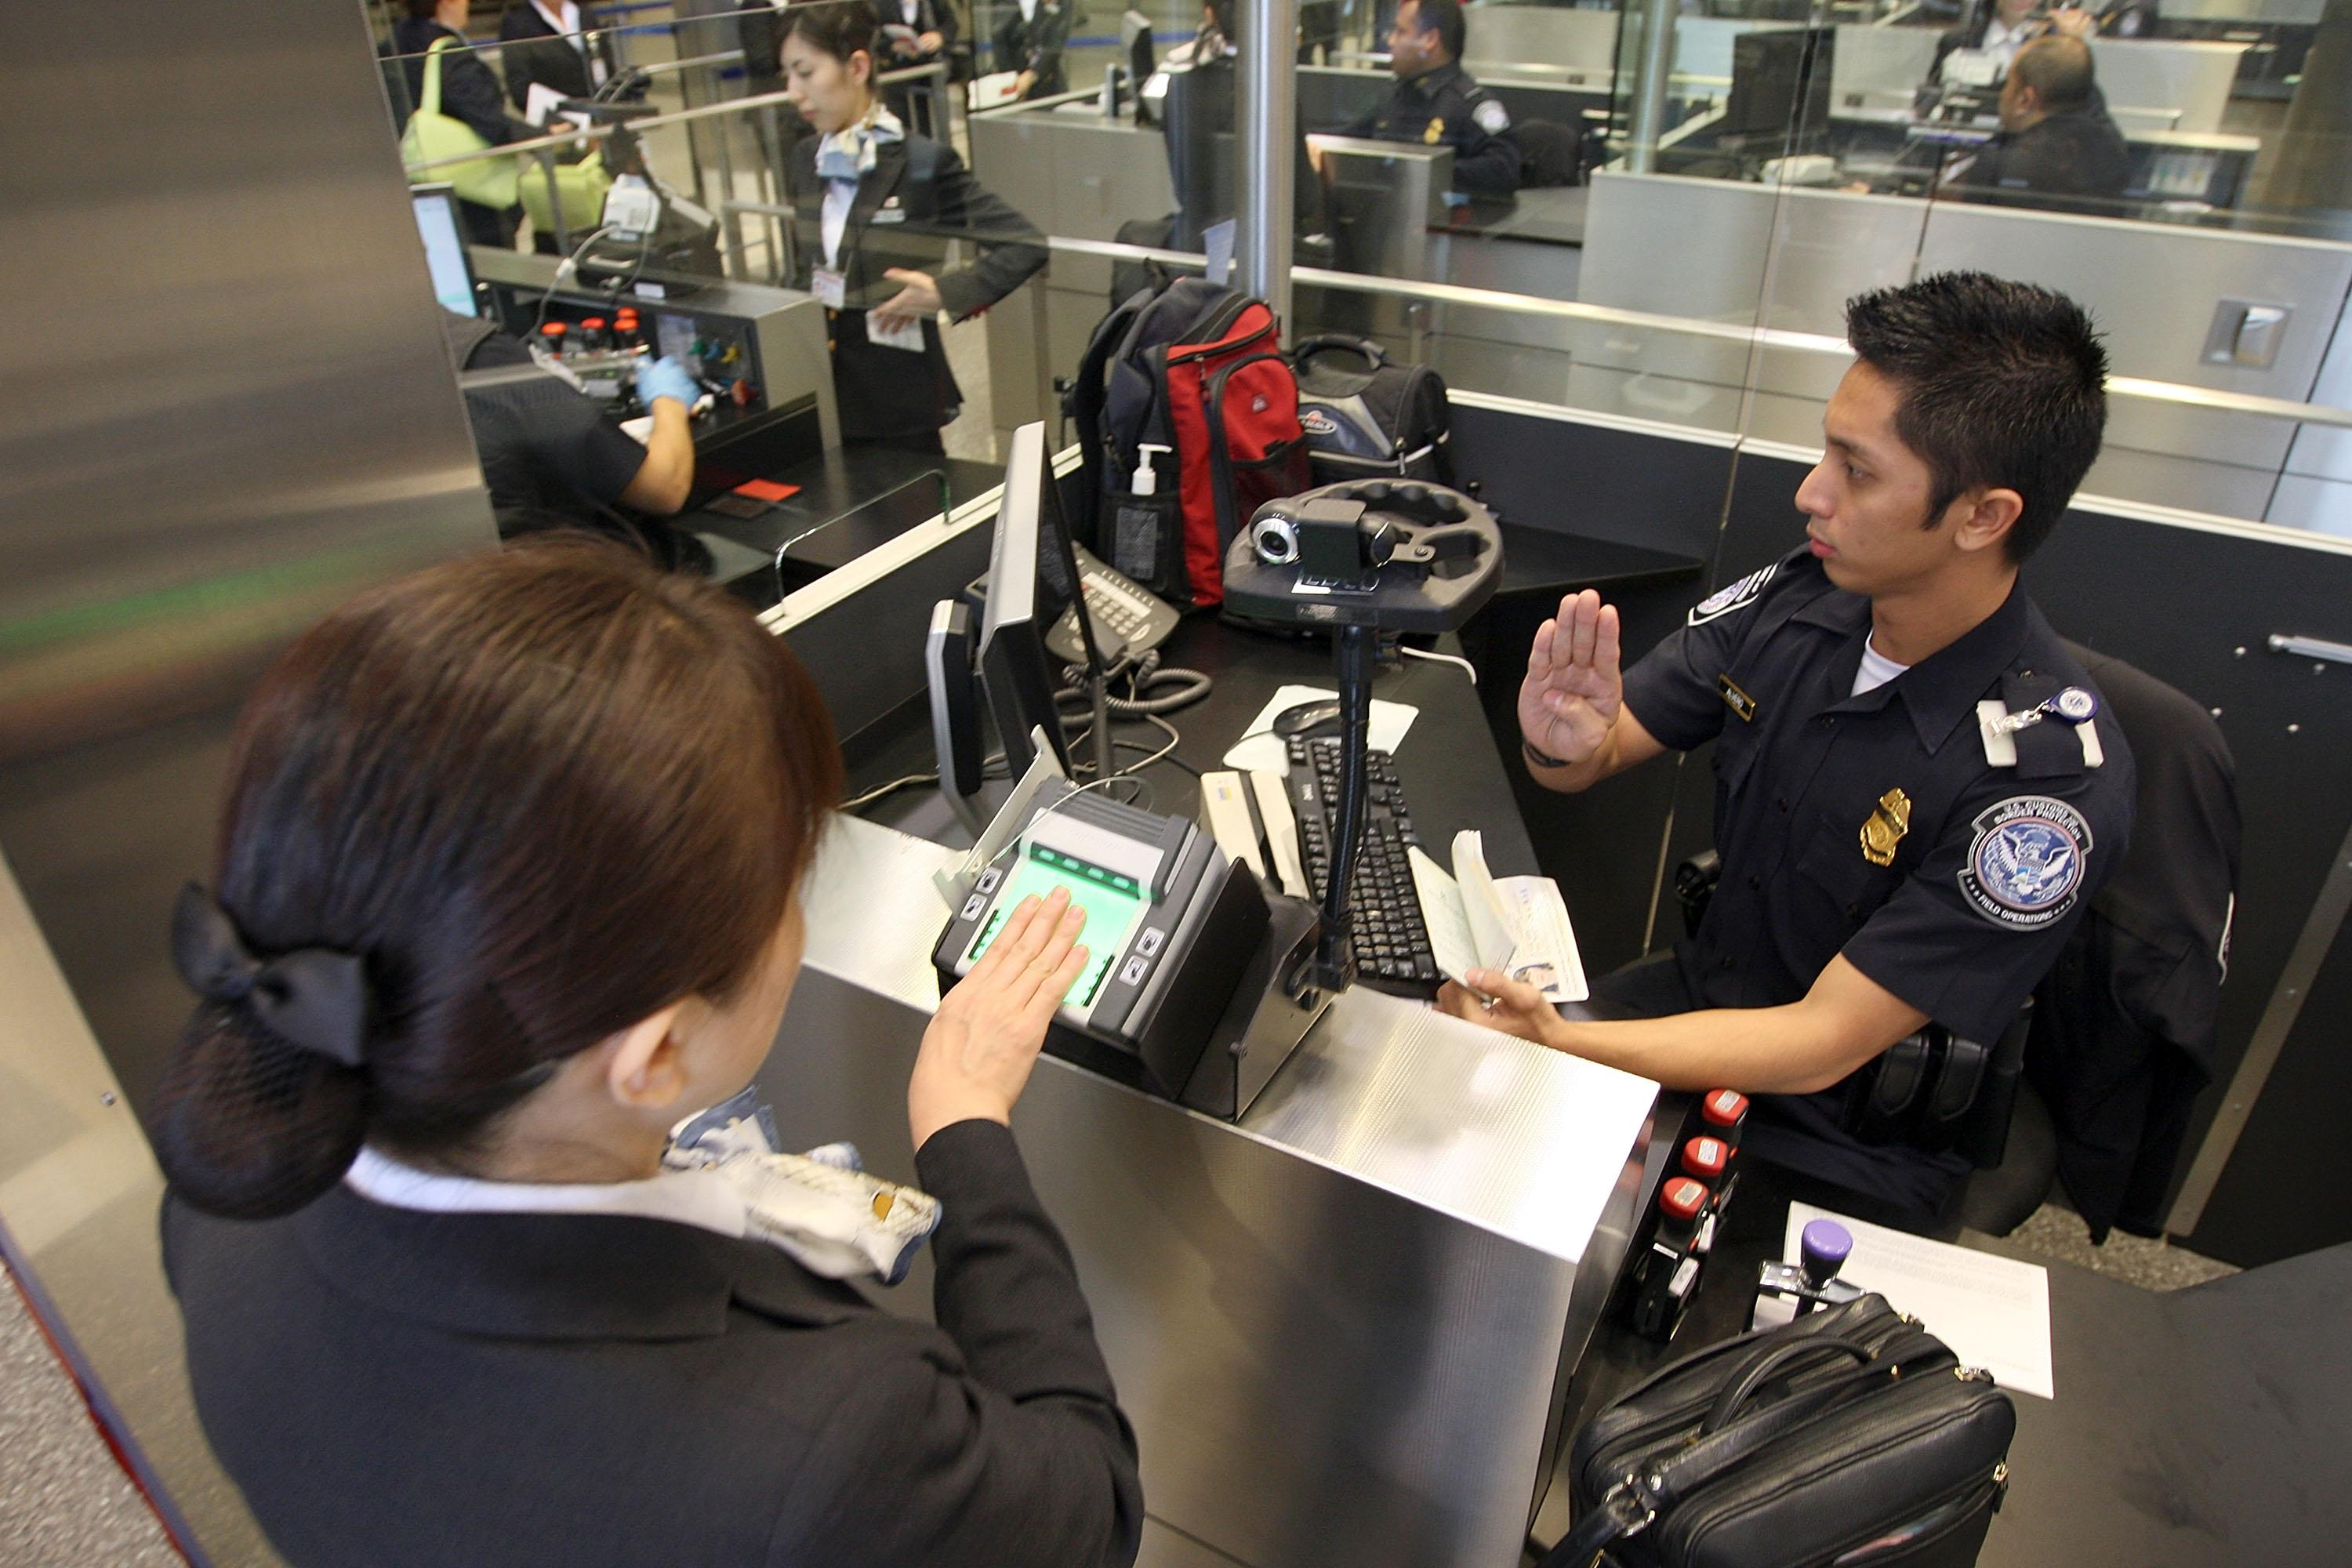 Judge rules border DHS needs reasons to search travelers' phones